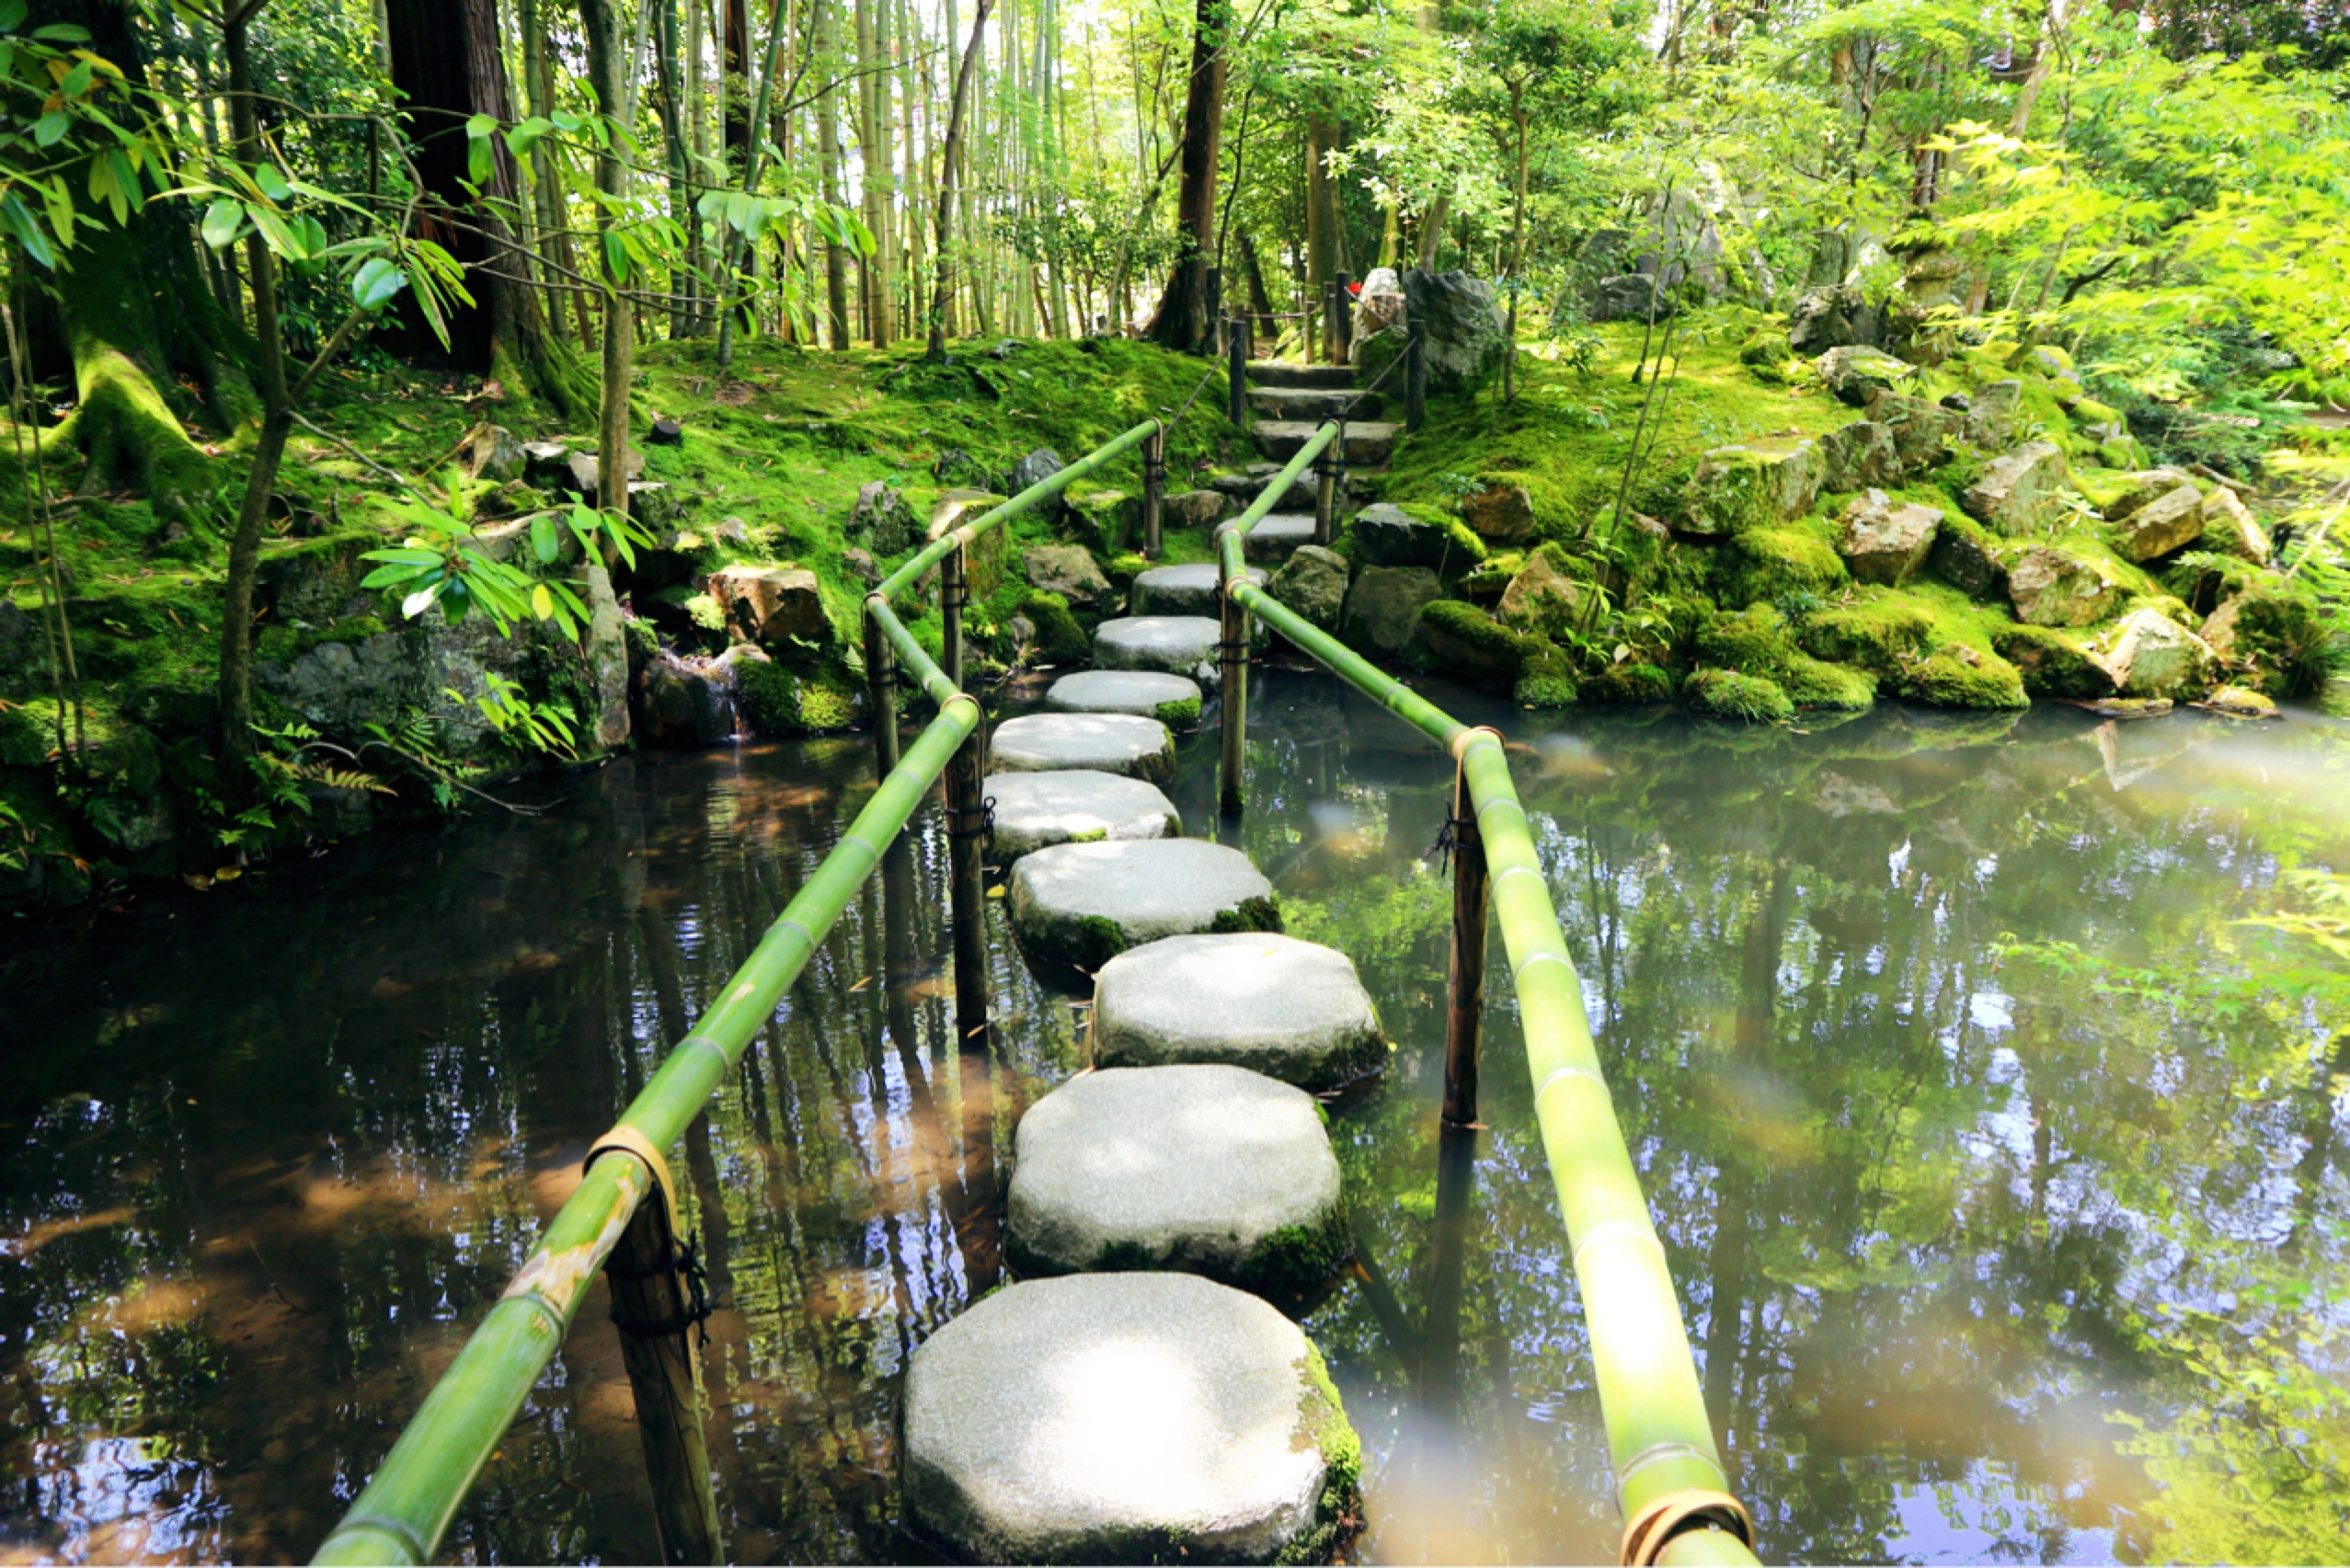 Tenju-an: a garden full of life and water